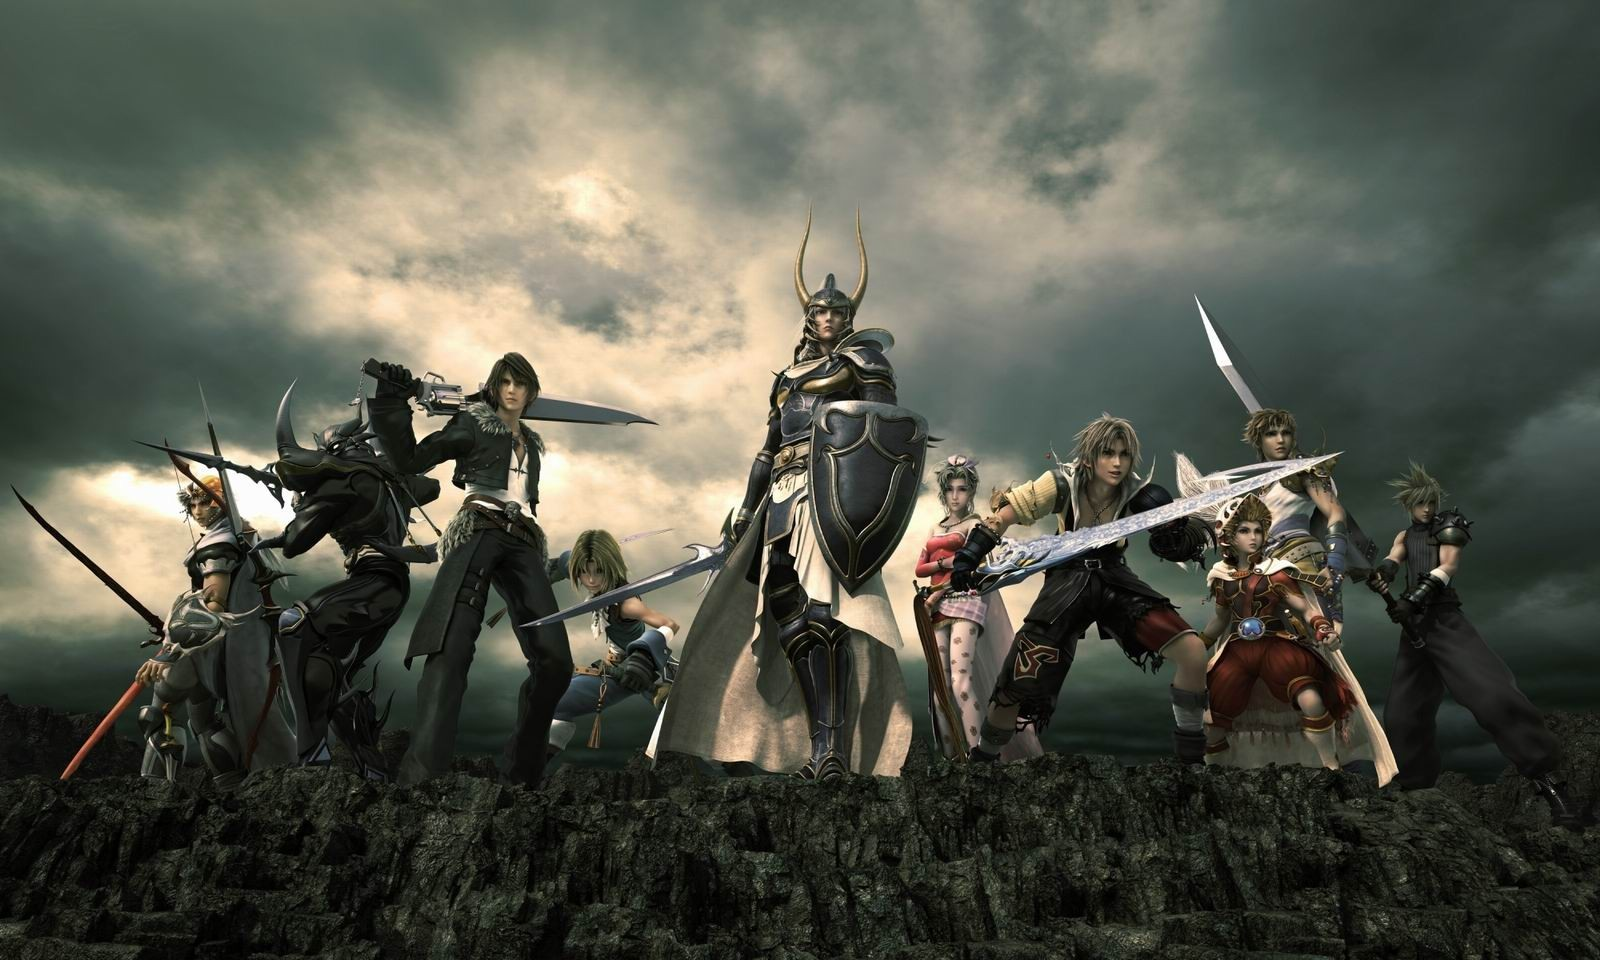 Final Fantasy armor Swords HD Wallpaper